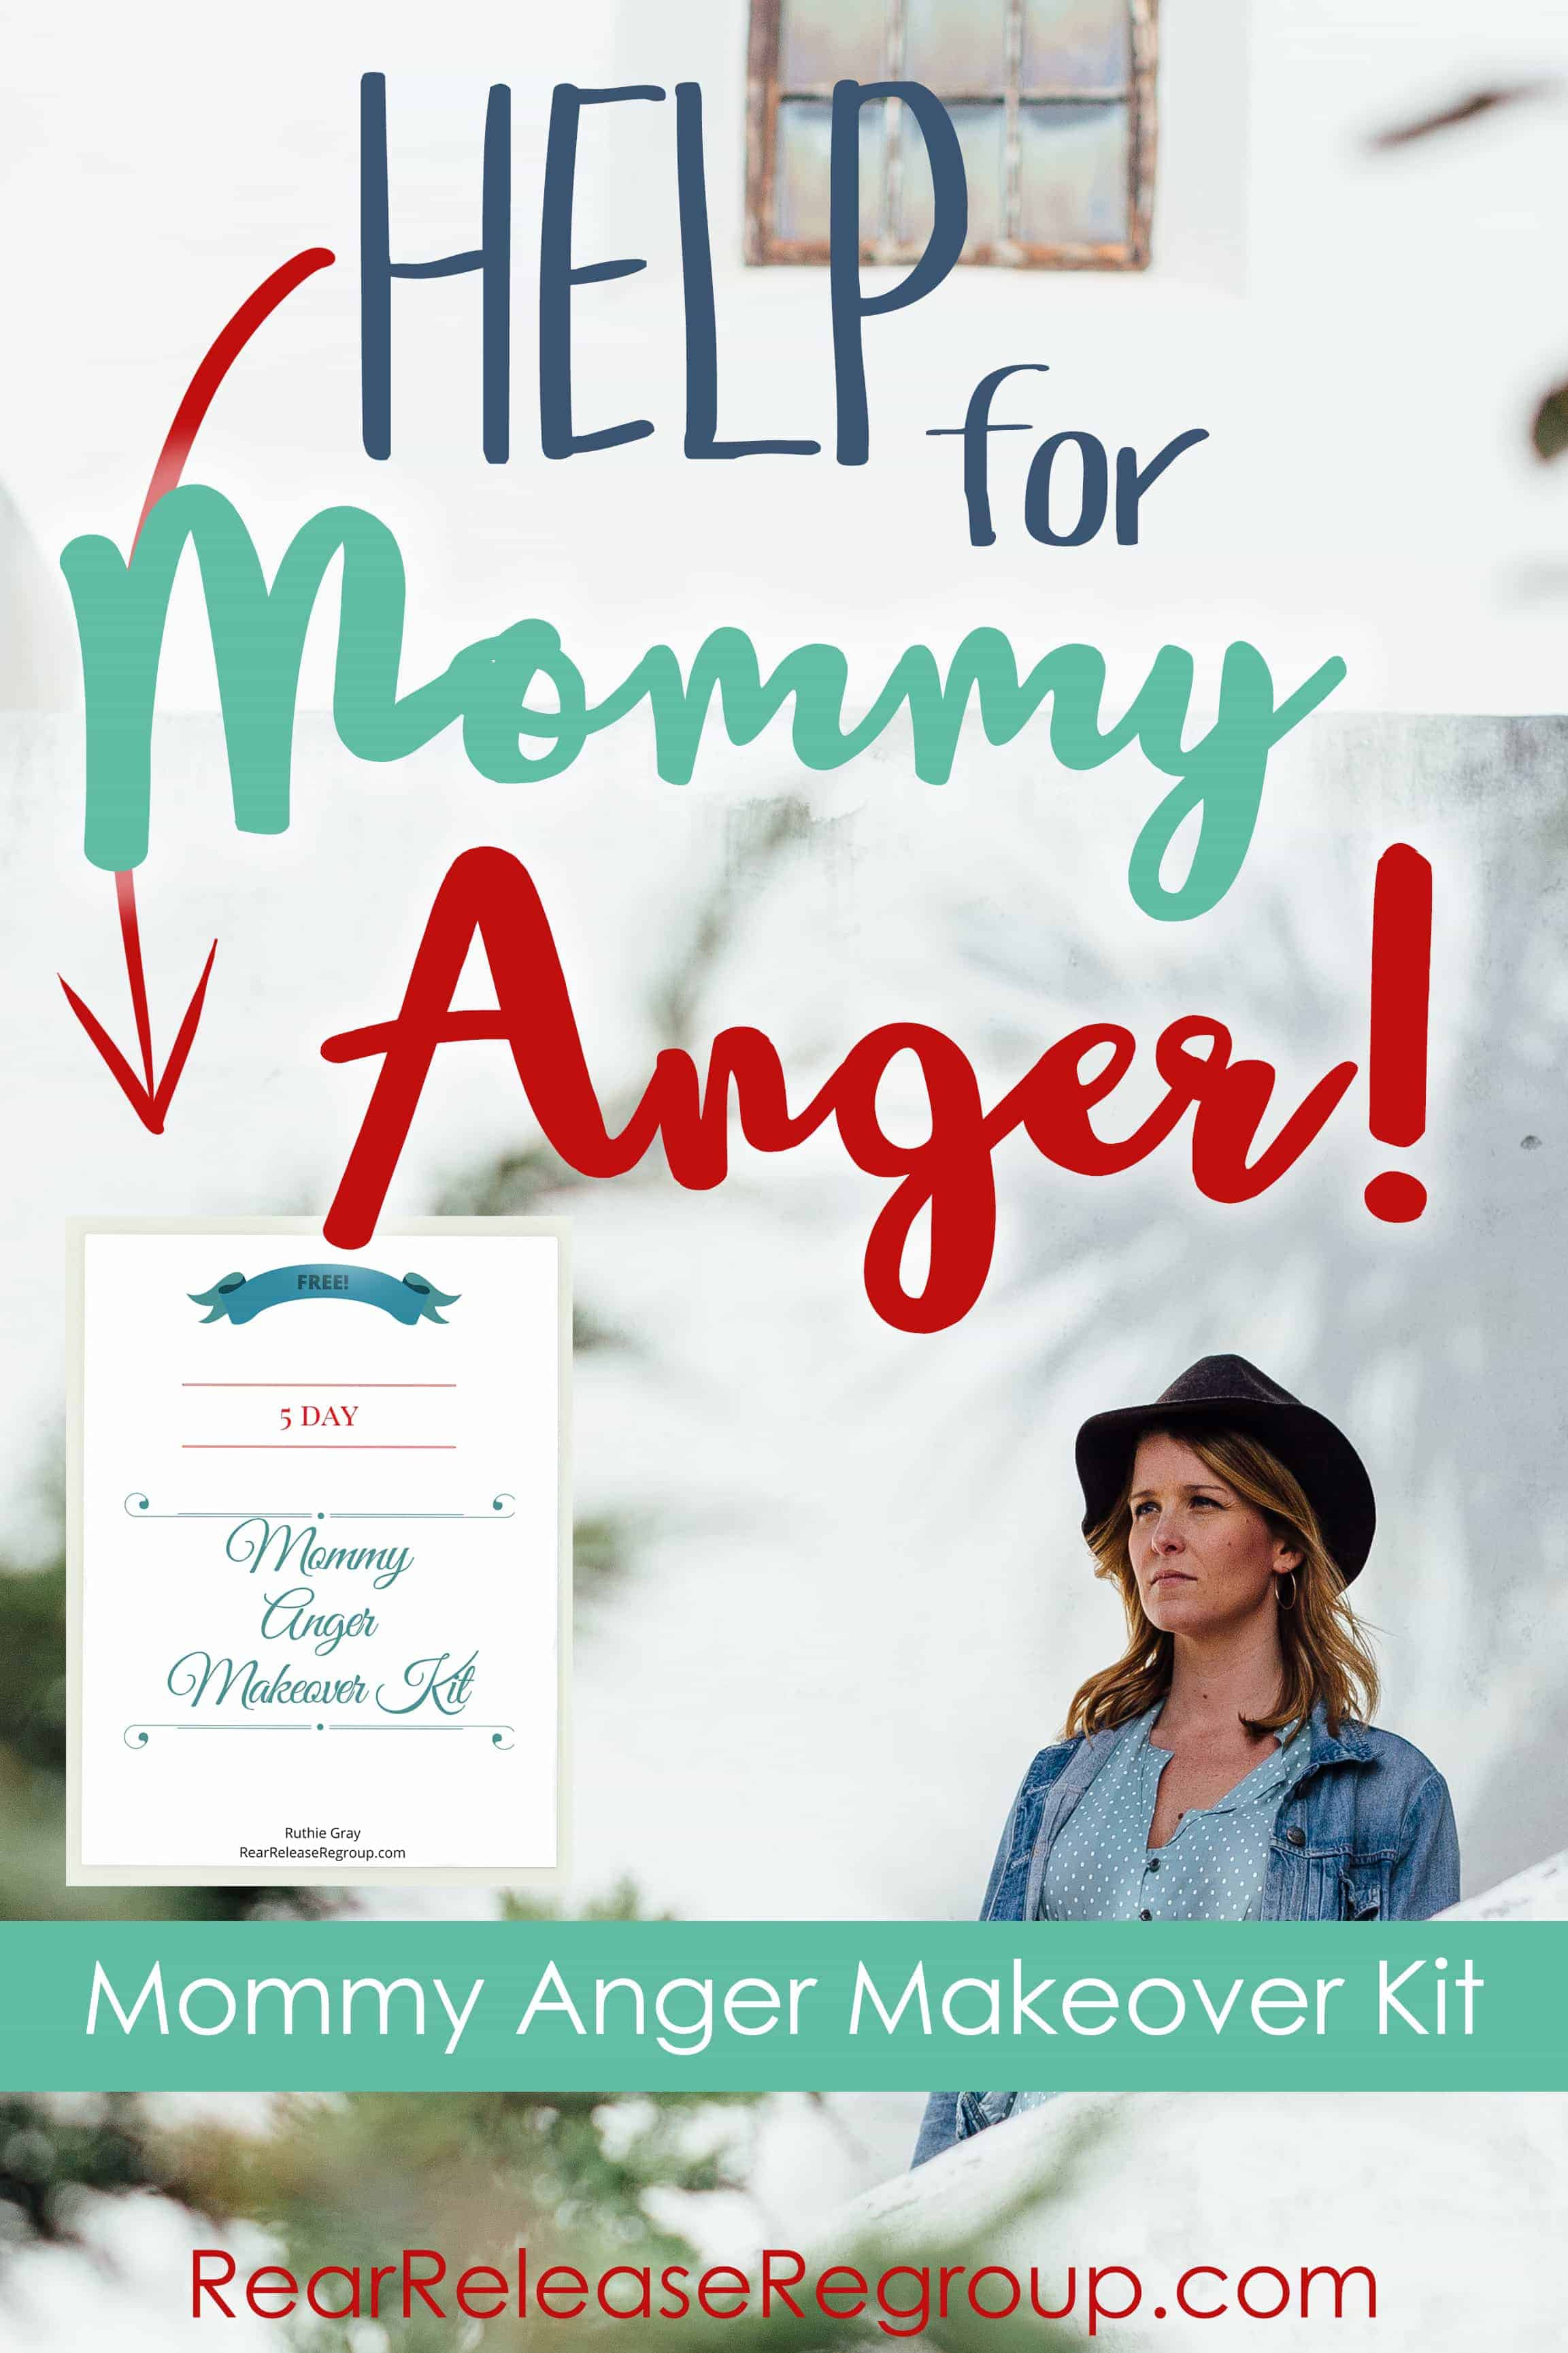 Do you need a mommy anger makeover? Are you tired and weary of your temper, but also of your people? Come away with me for a FREE 5 Day Mommy Anger Makeover!